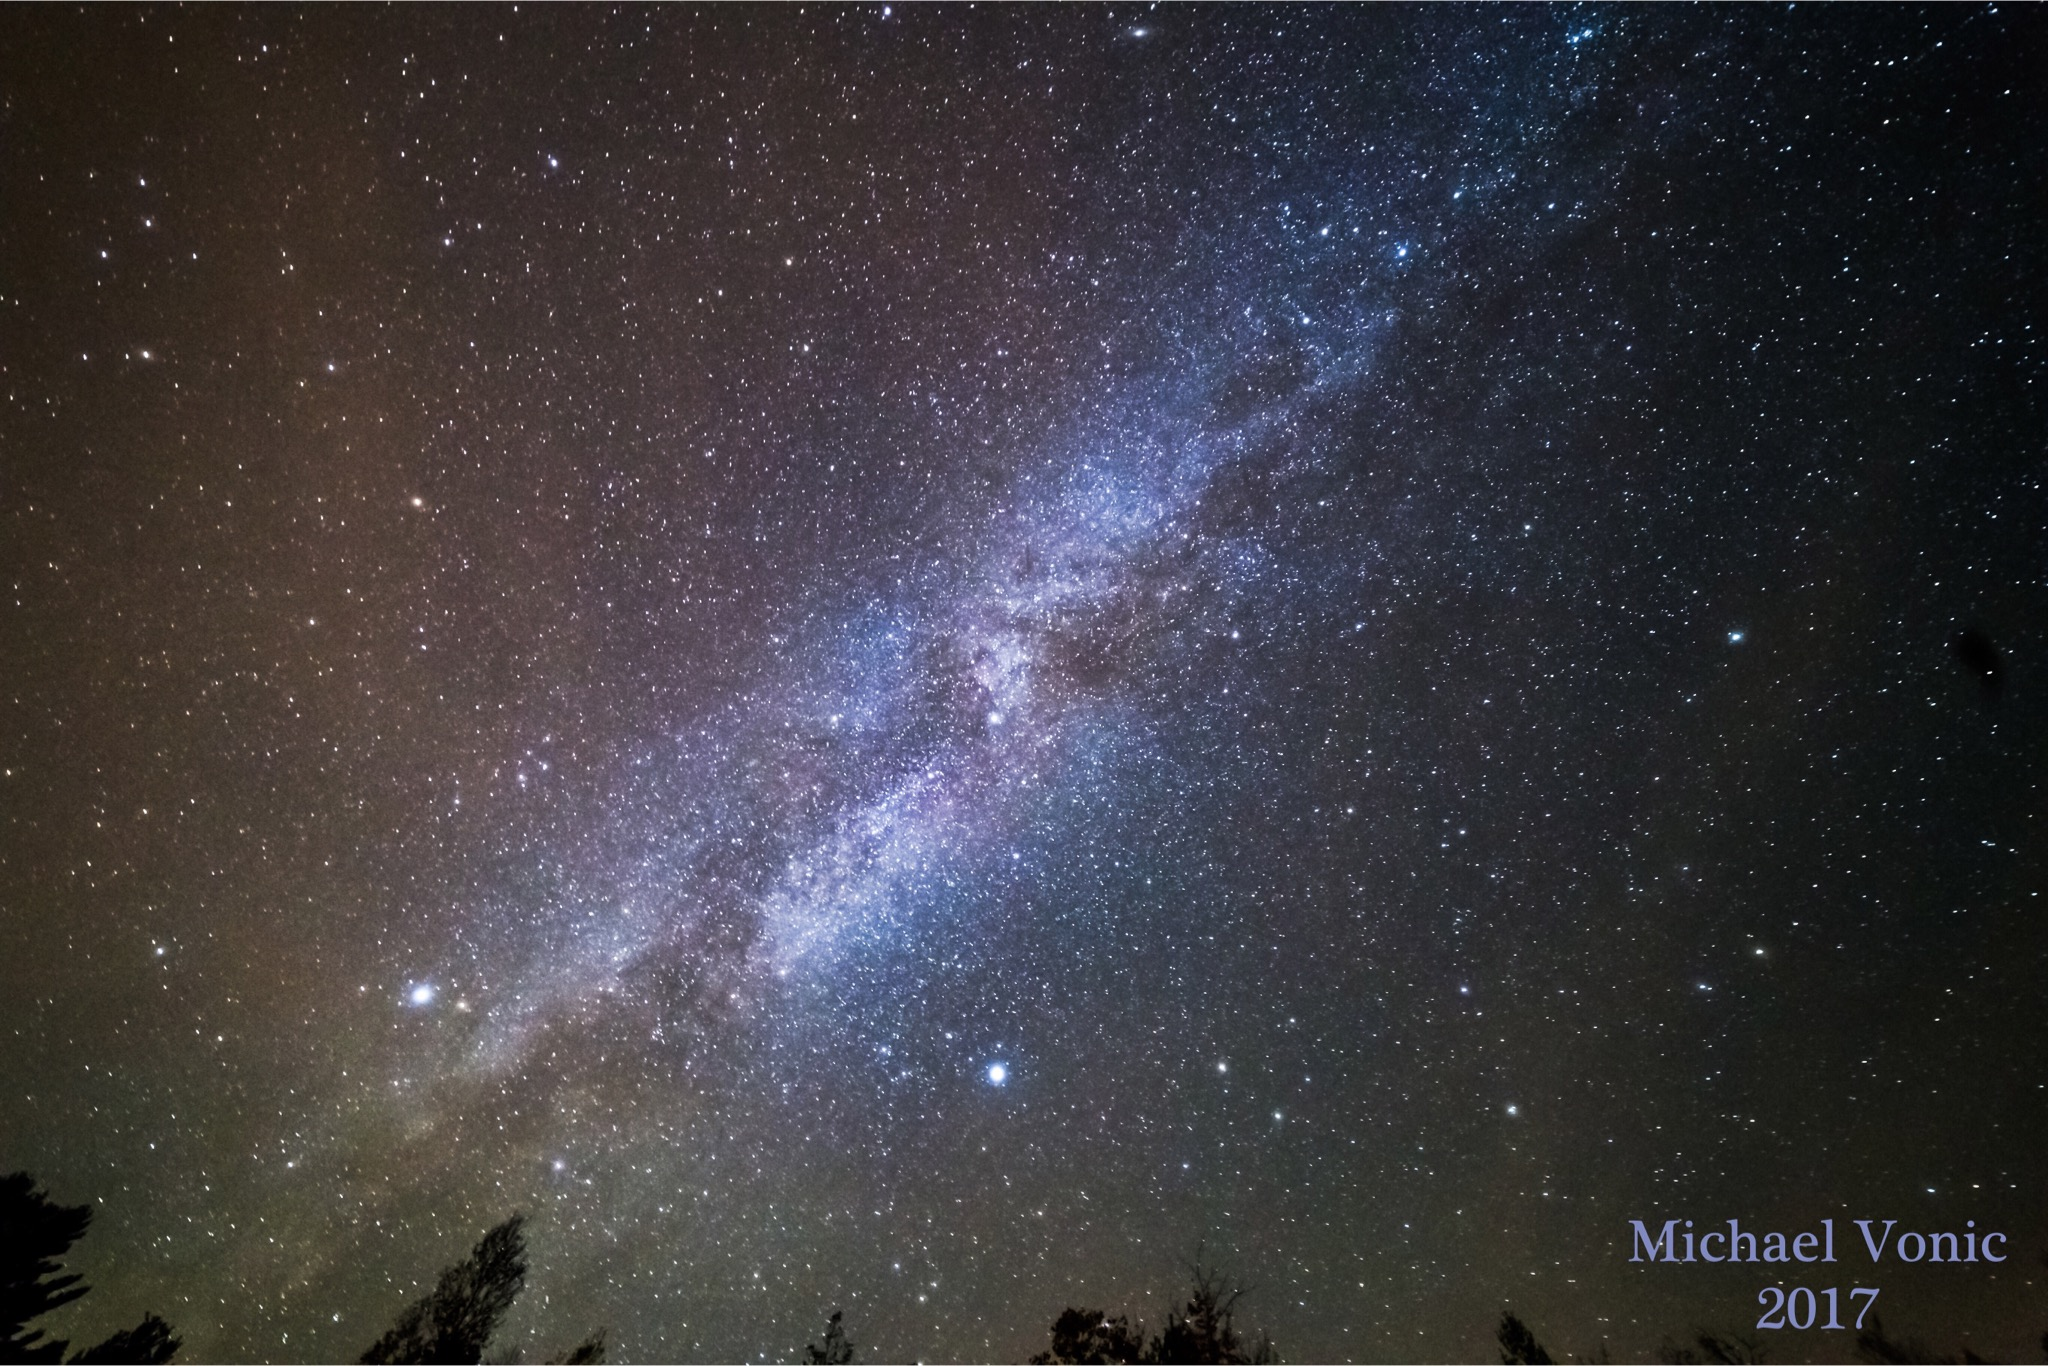 The Milky Way Galaxy - Michael Vonic